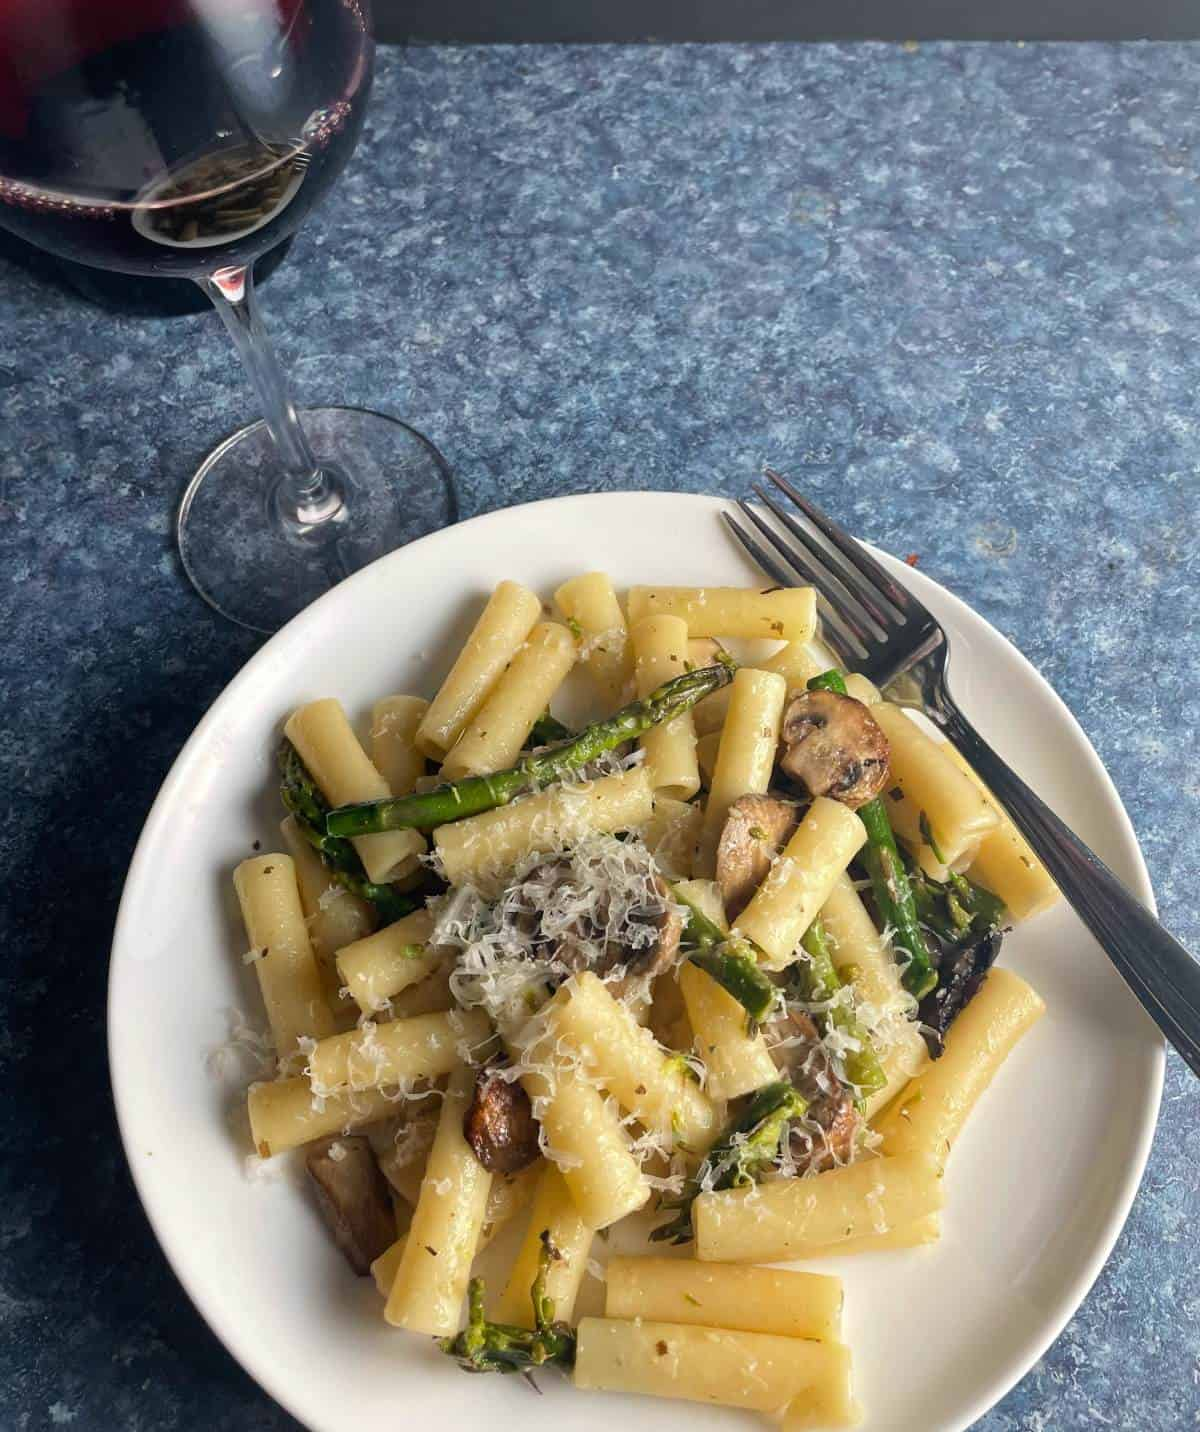 asparagus and mushroom ziti served on a white plate with a glass of red wine.